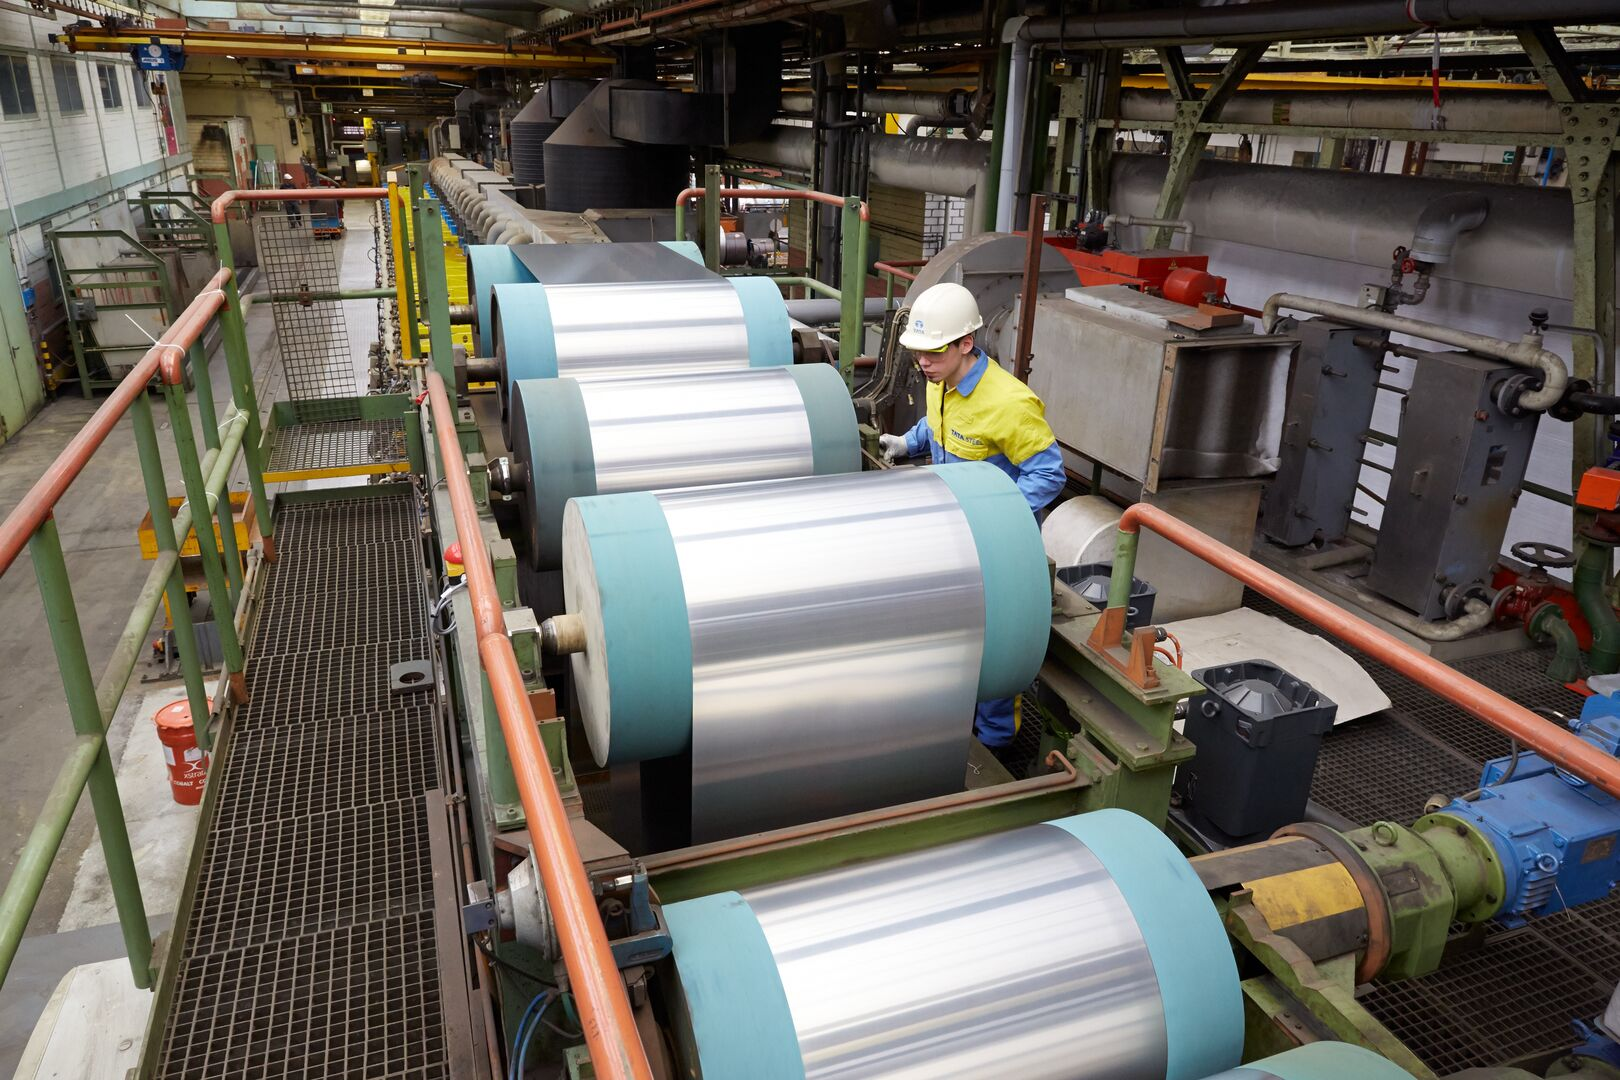 Nickel plating line at Tata Steel manufacturing site